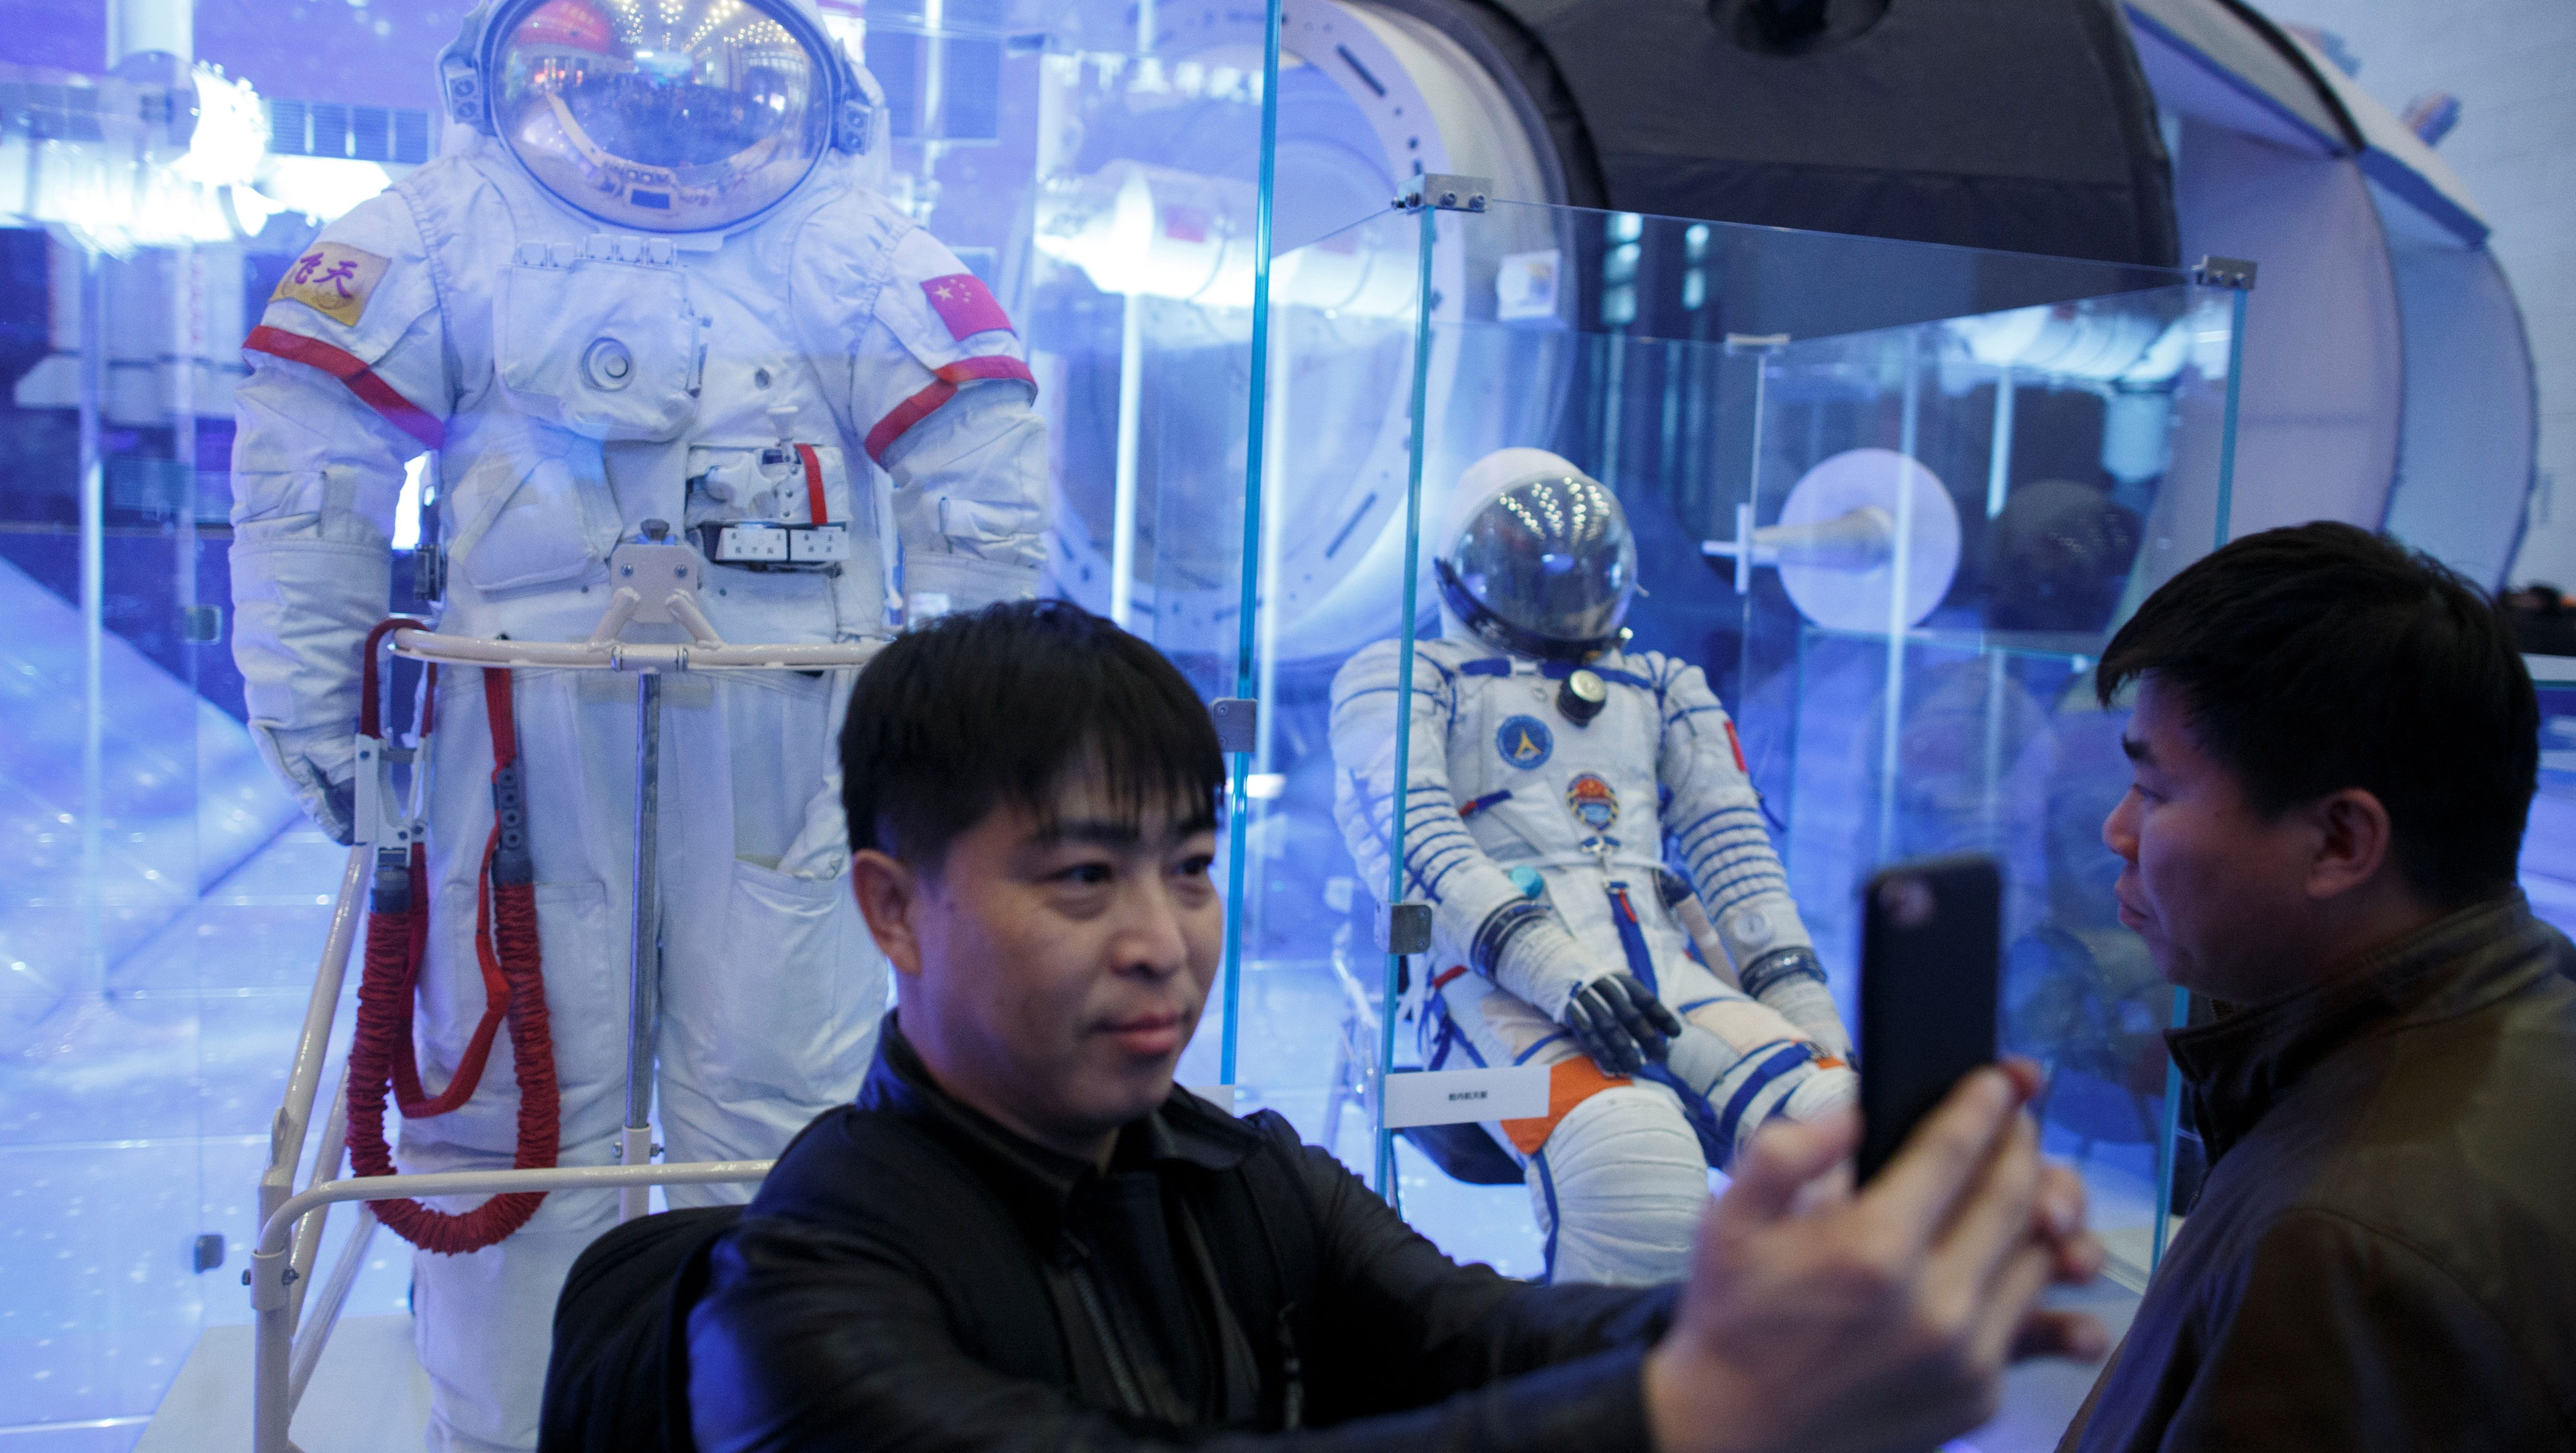 A visitor takes a selfie in front of a Chinese space suit at an exhibition marking the 40th anniversary of China's reform and opening up at the National Museum of China in Beijing, China November 14, 2018. REUTERS/Thomas Peter